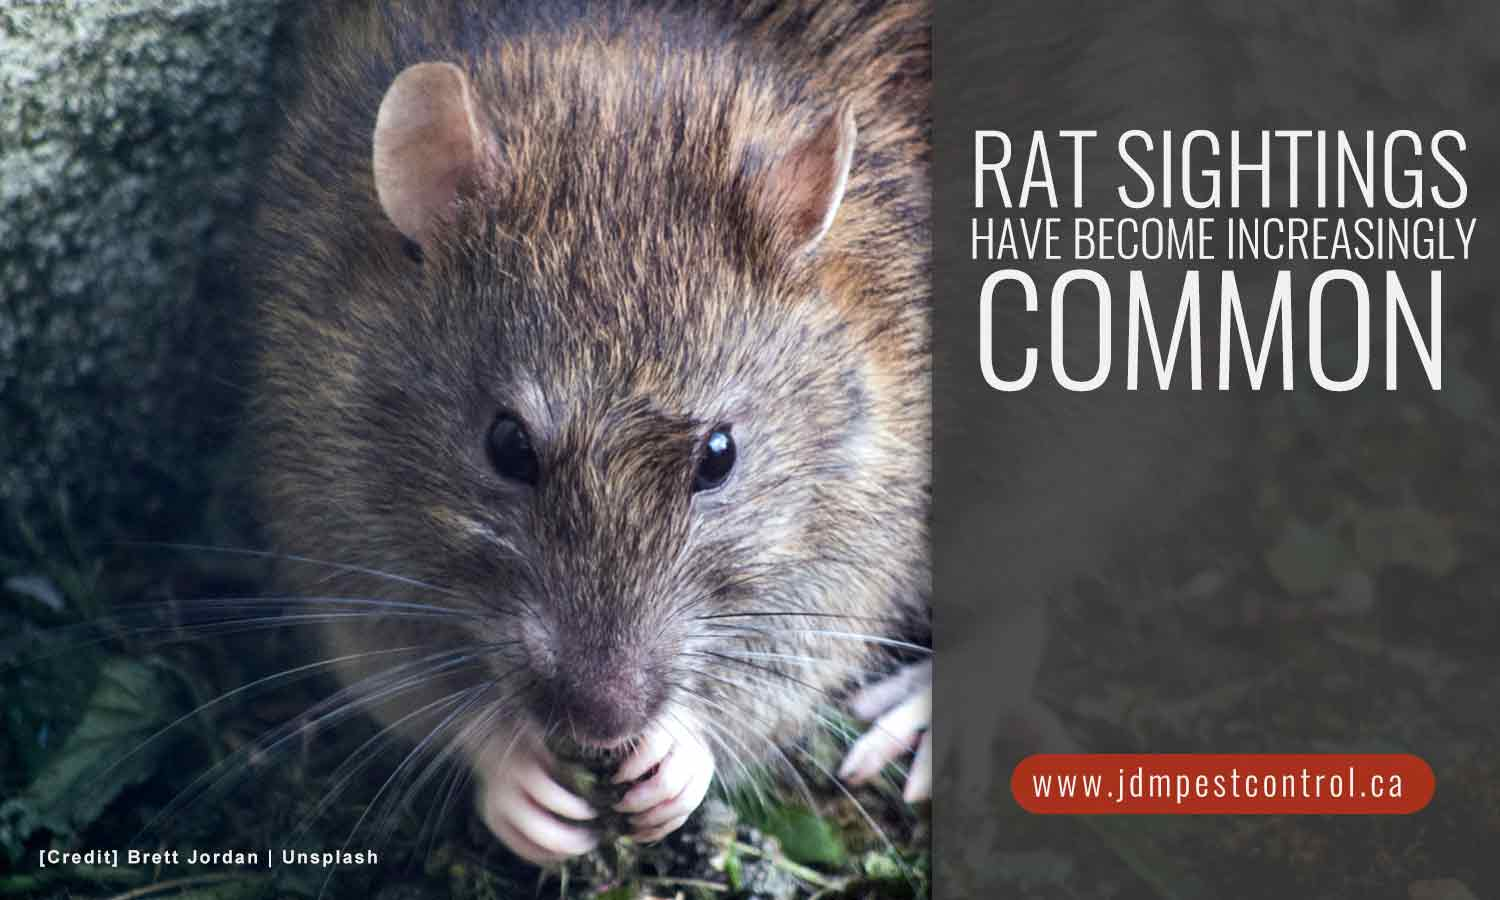 Rat sightings have become increasingly common